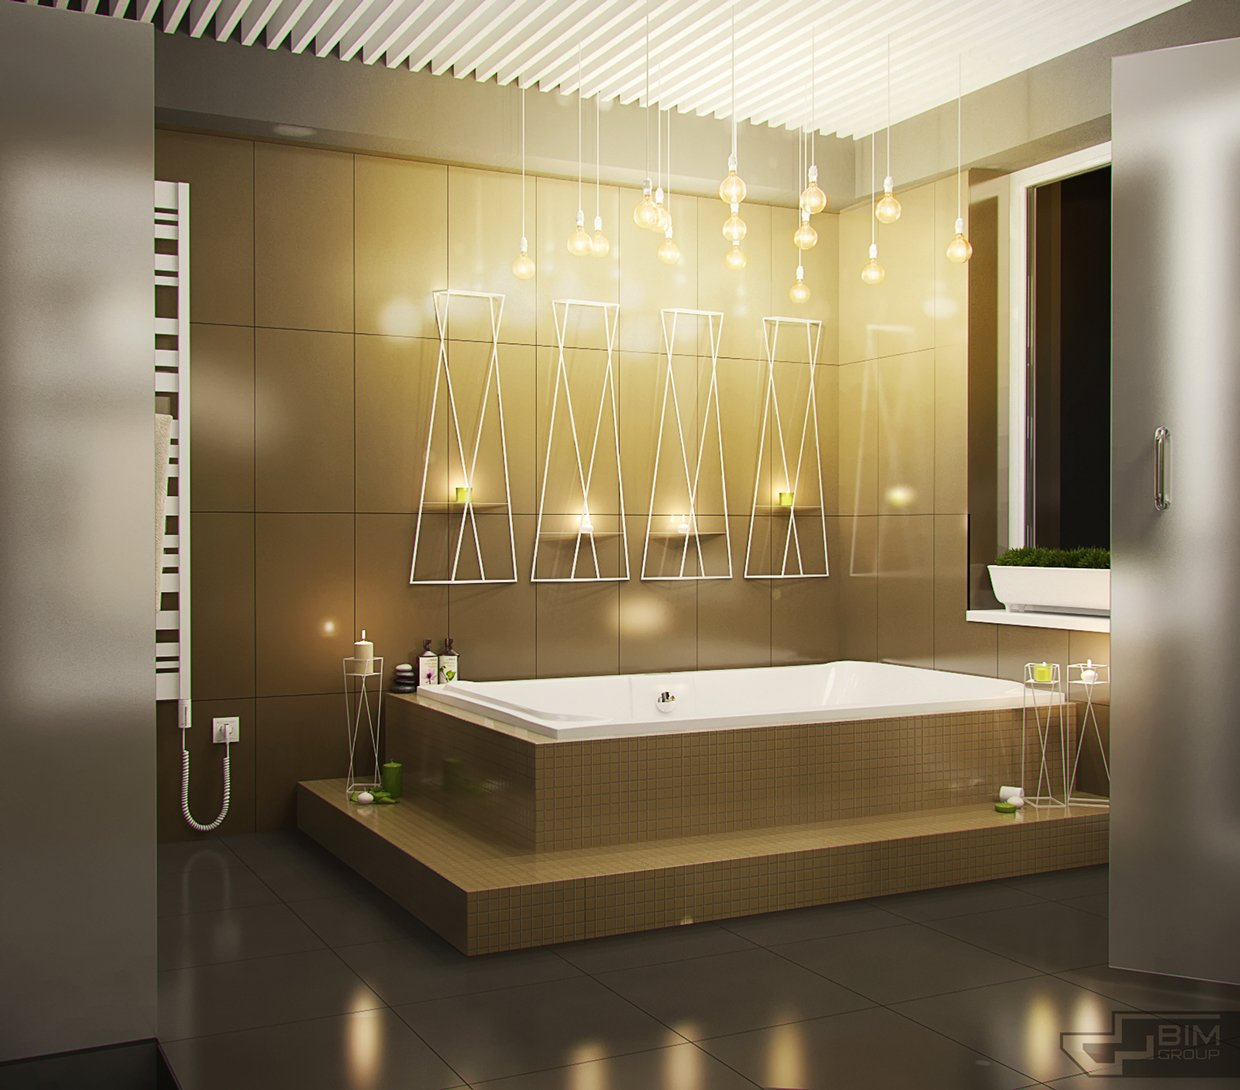 Decorating bathroom backsplash ideas showing a modern and for Bathroom lighting design